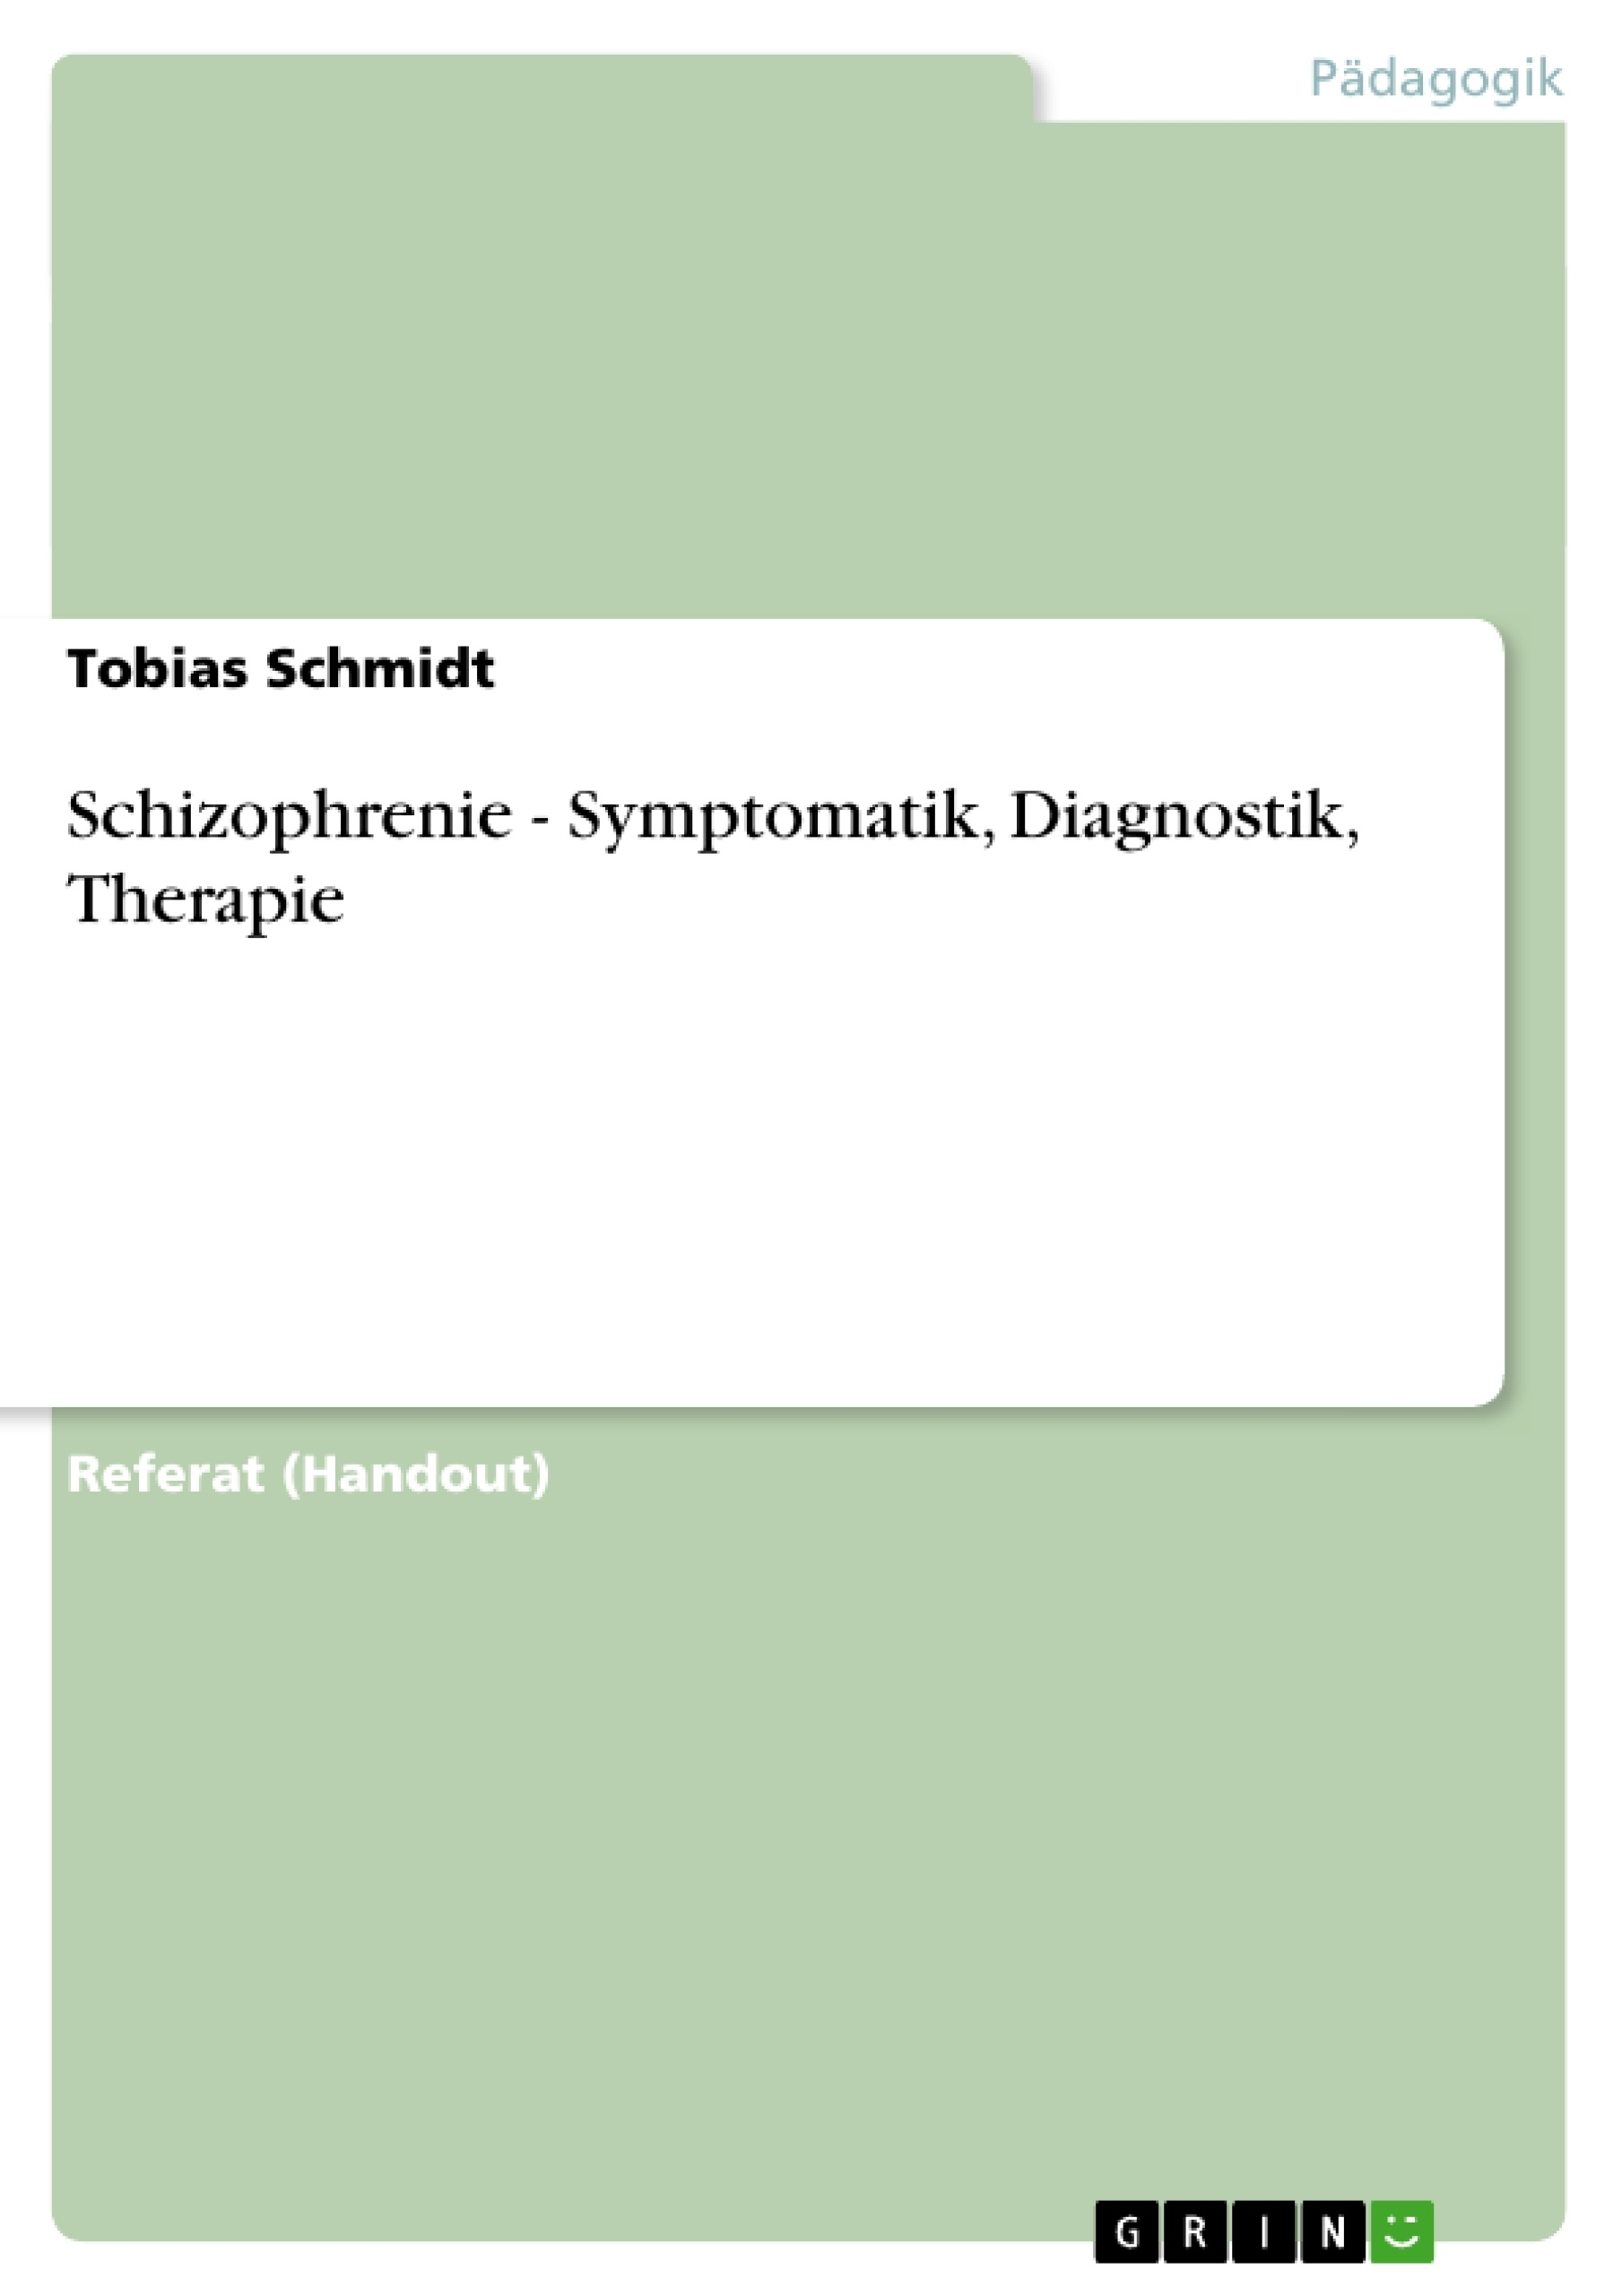 Titel: Schizophrenie - Symptomatik, Diagnostik, Therapie